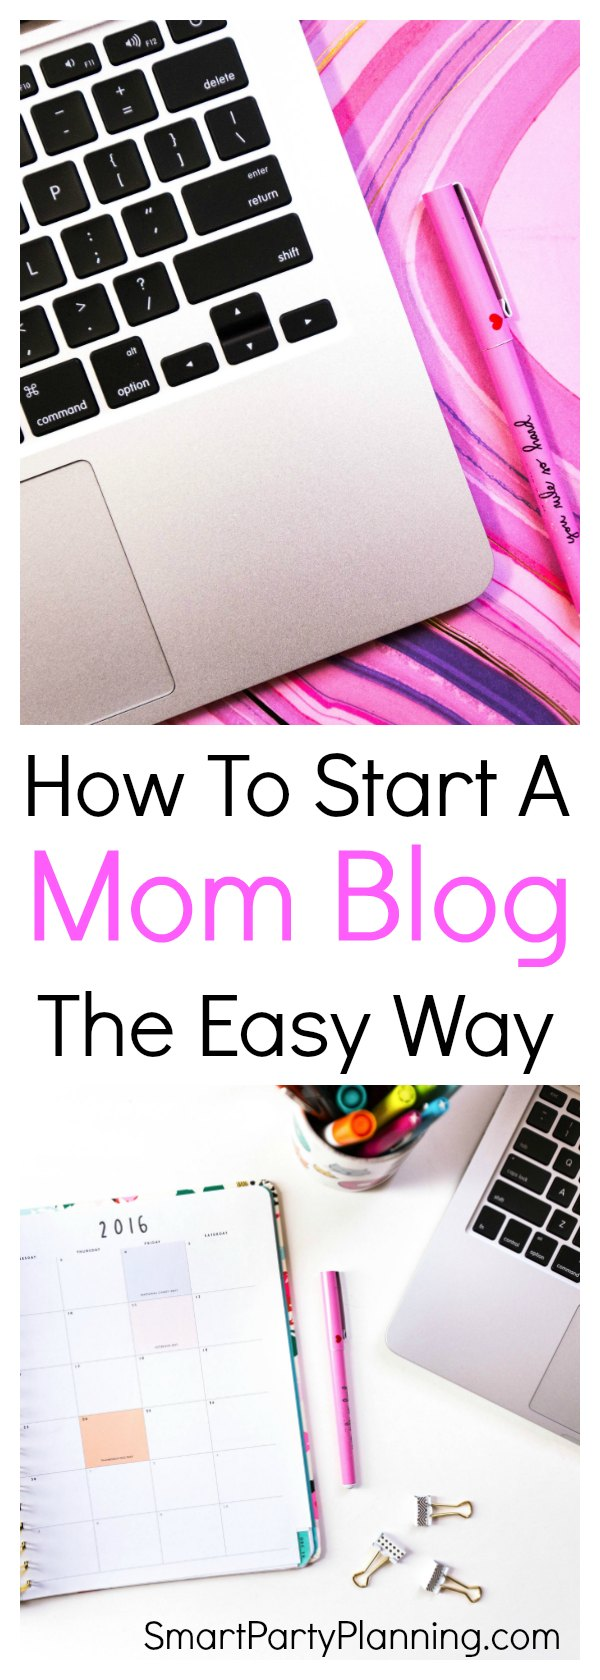 How To Start A Mom Blog The Easy Way